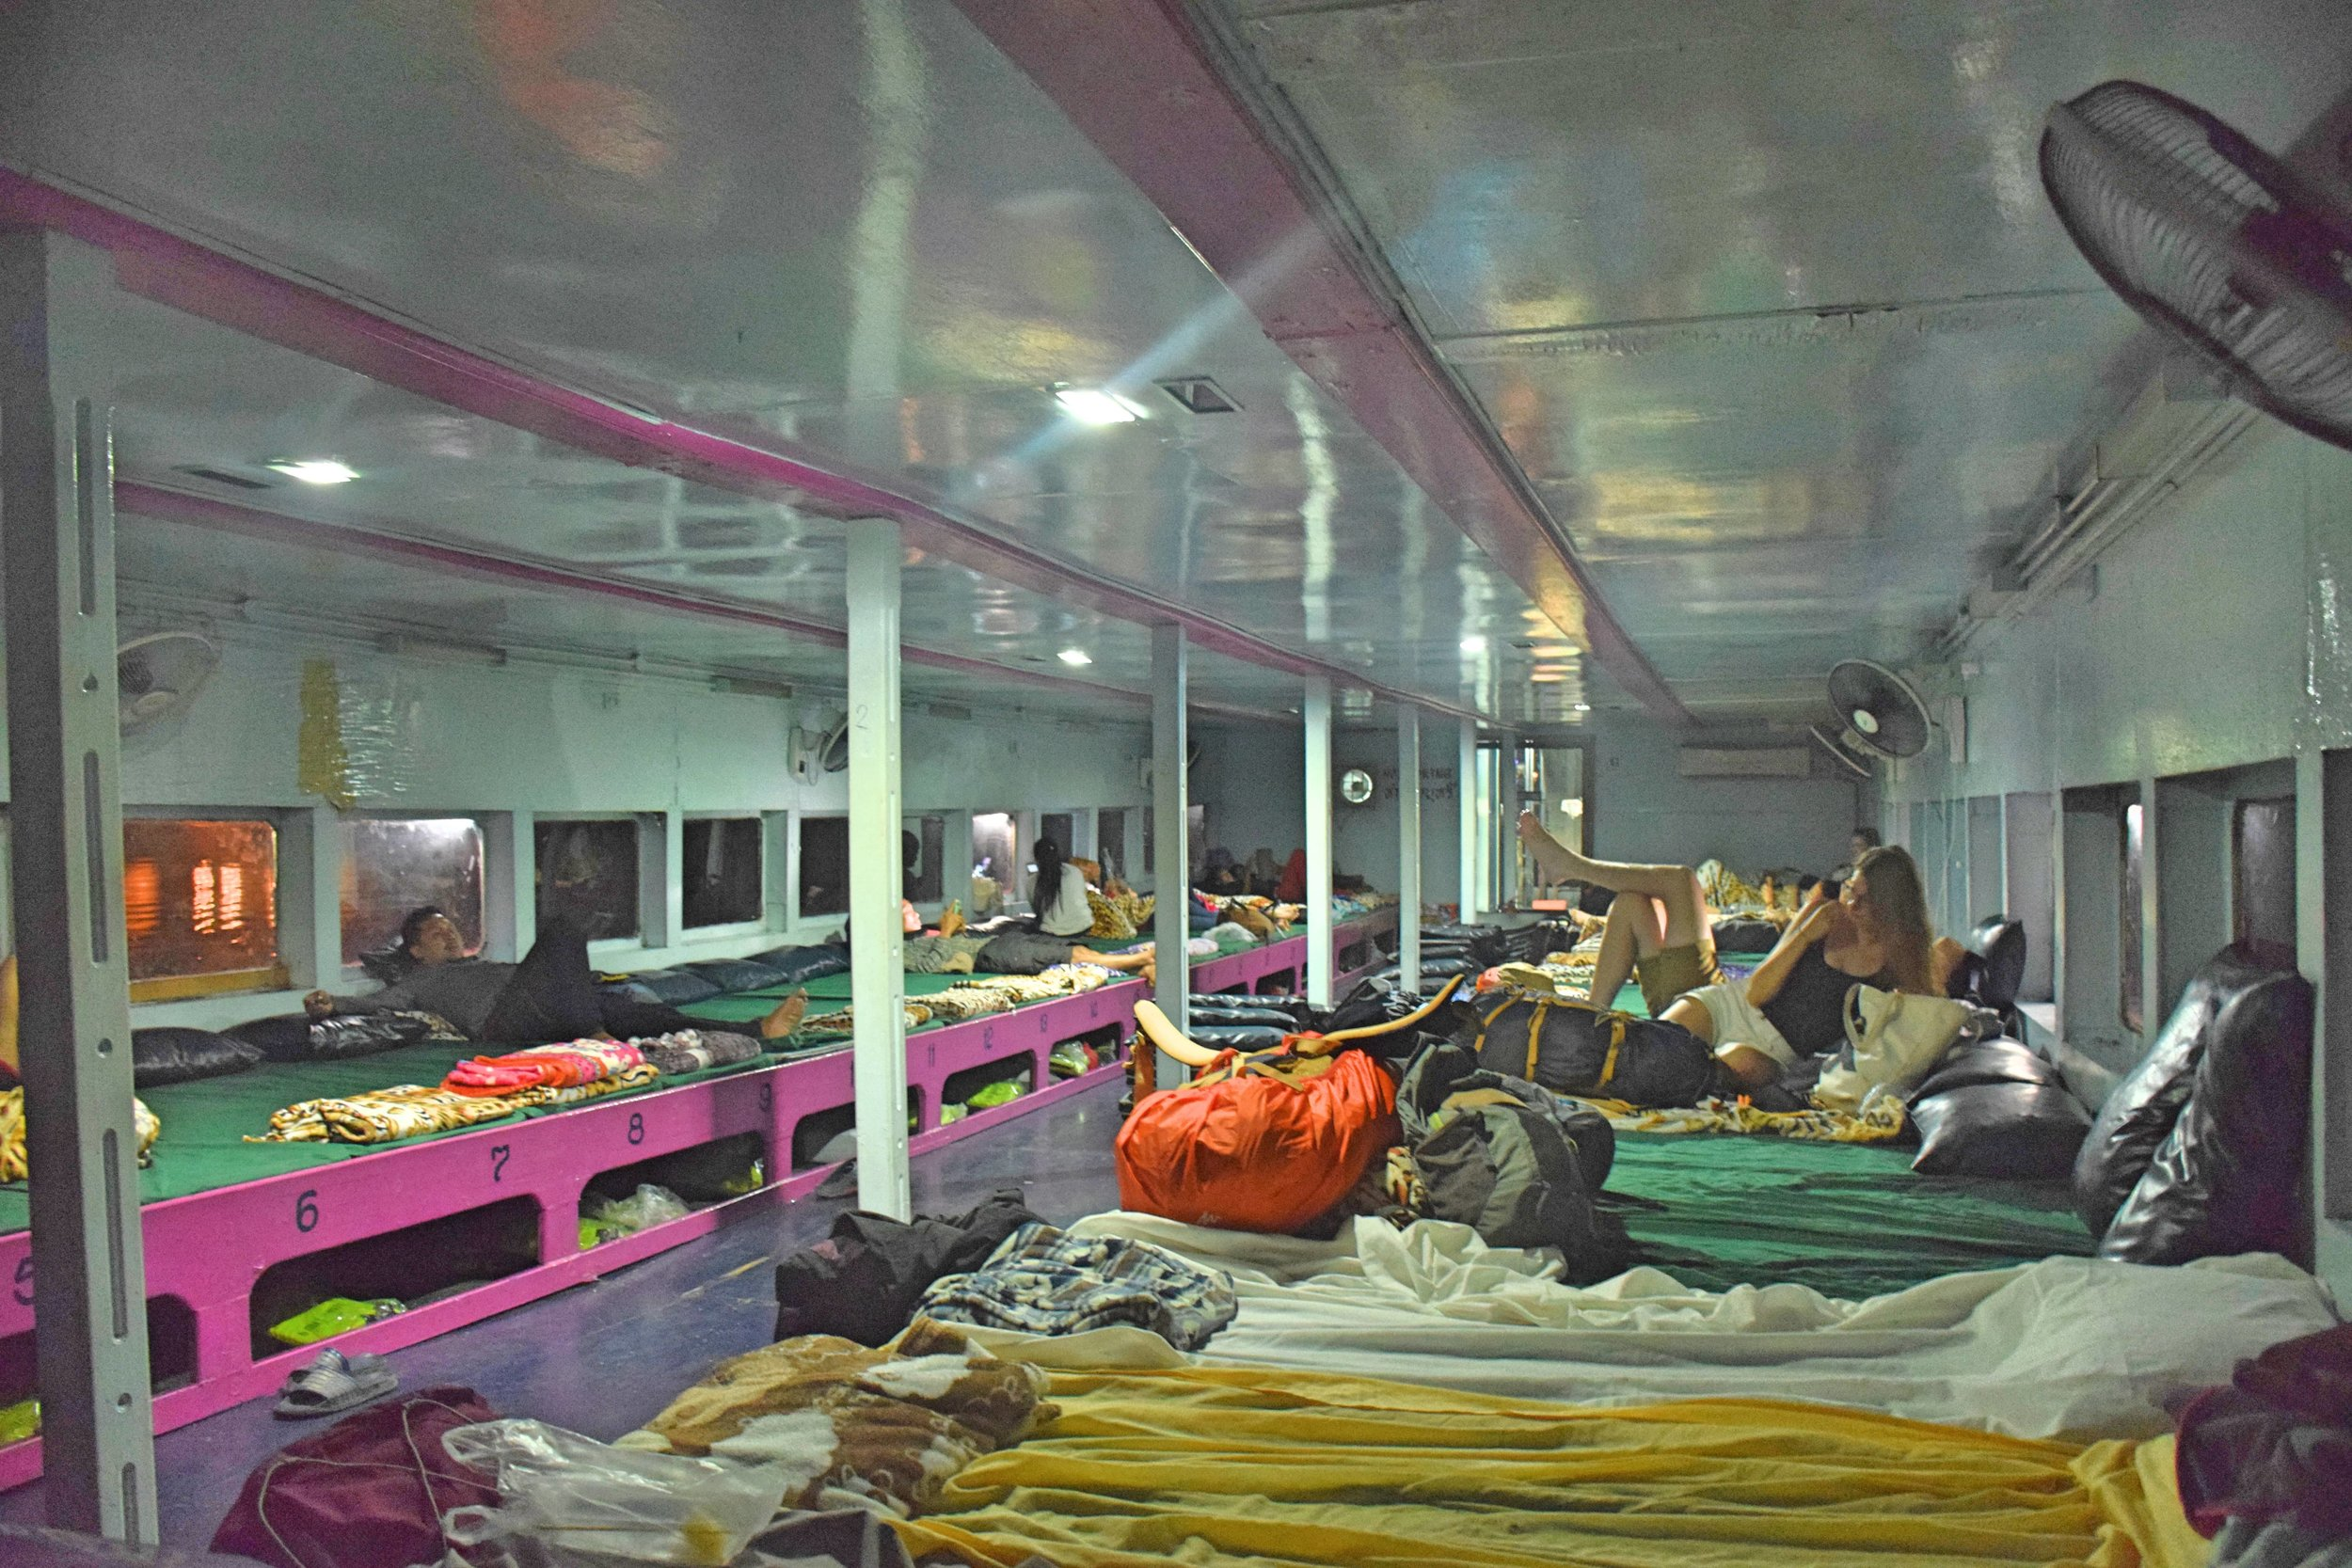 Passenger sleeping quarters on the boat